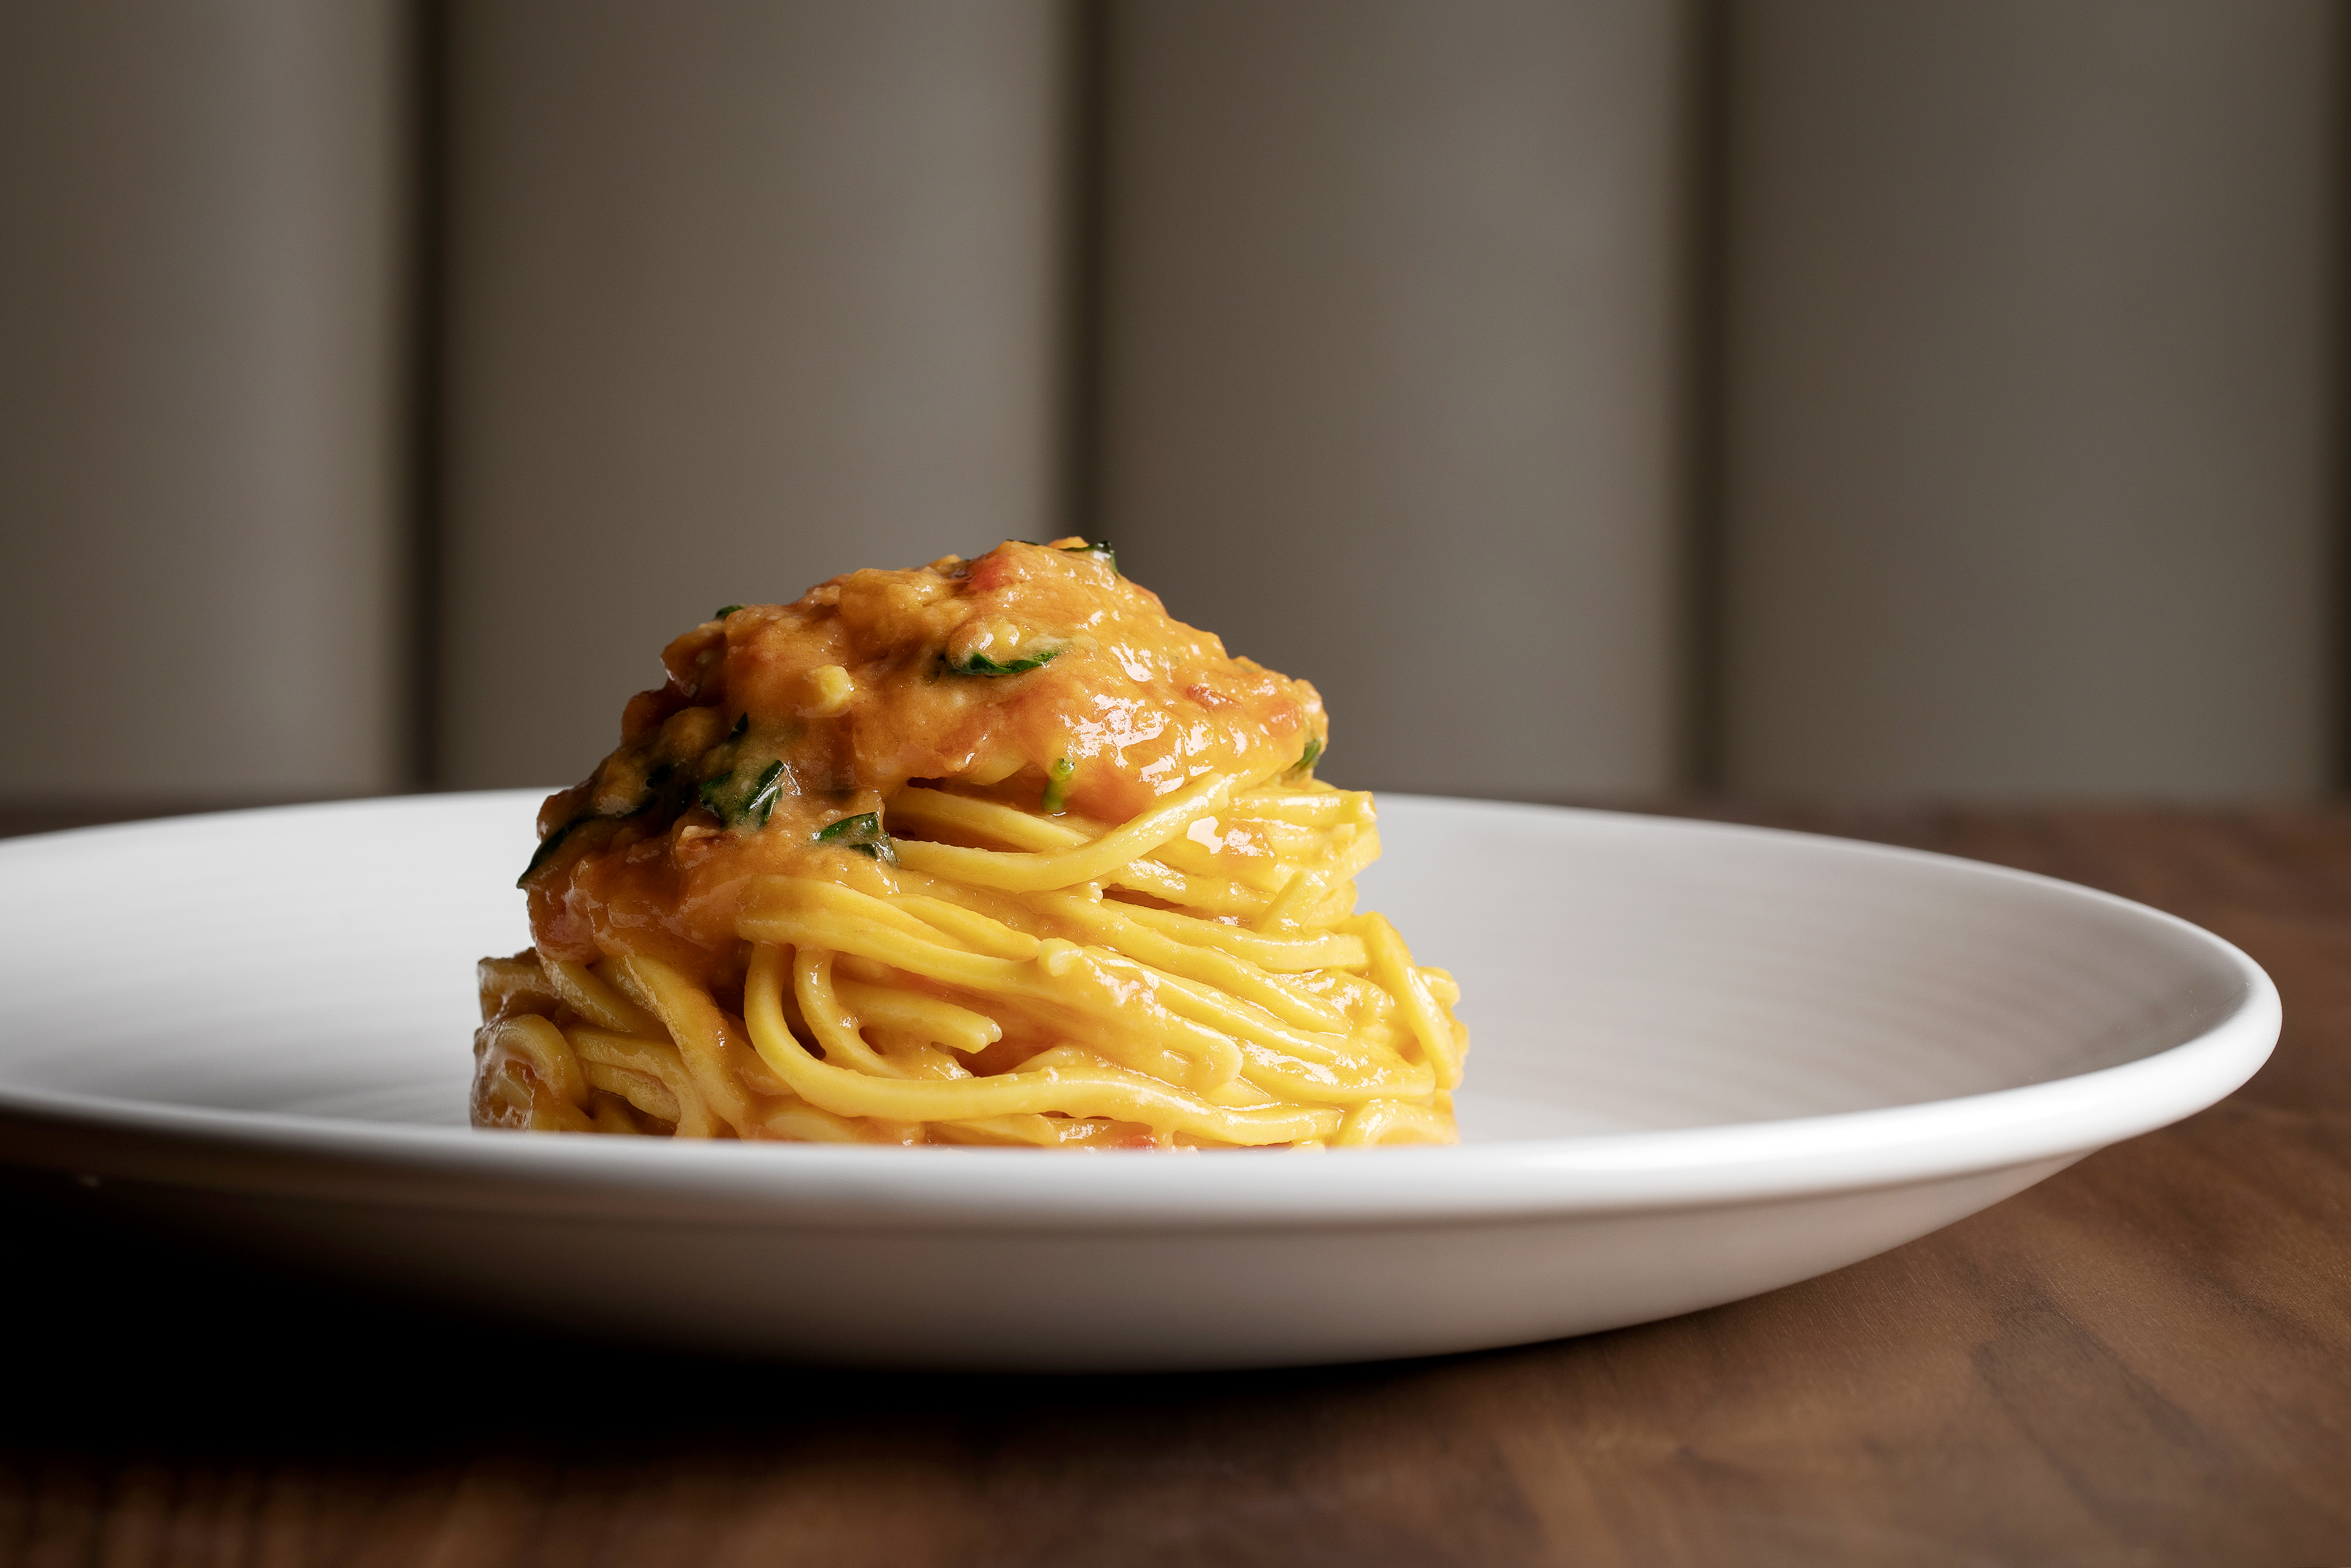 Sette Italian restaurant in Knightsbridge gets awful restaurant review in Sunday Times